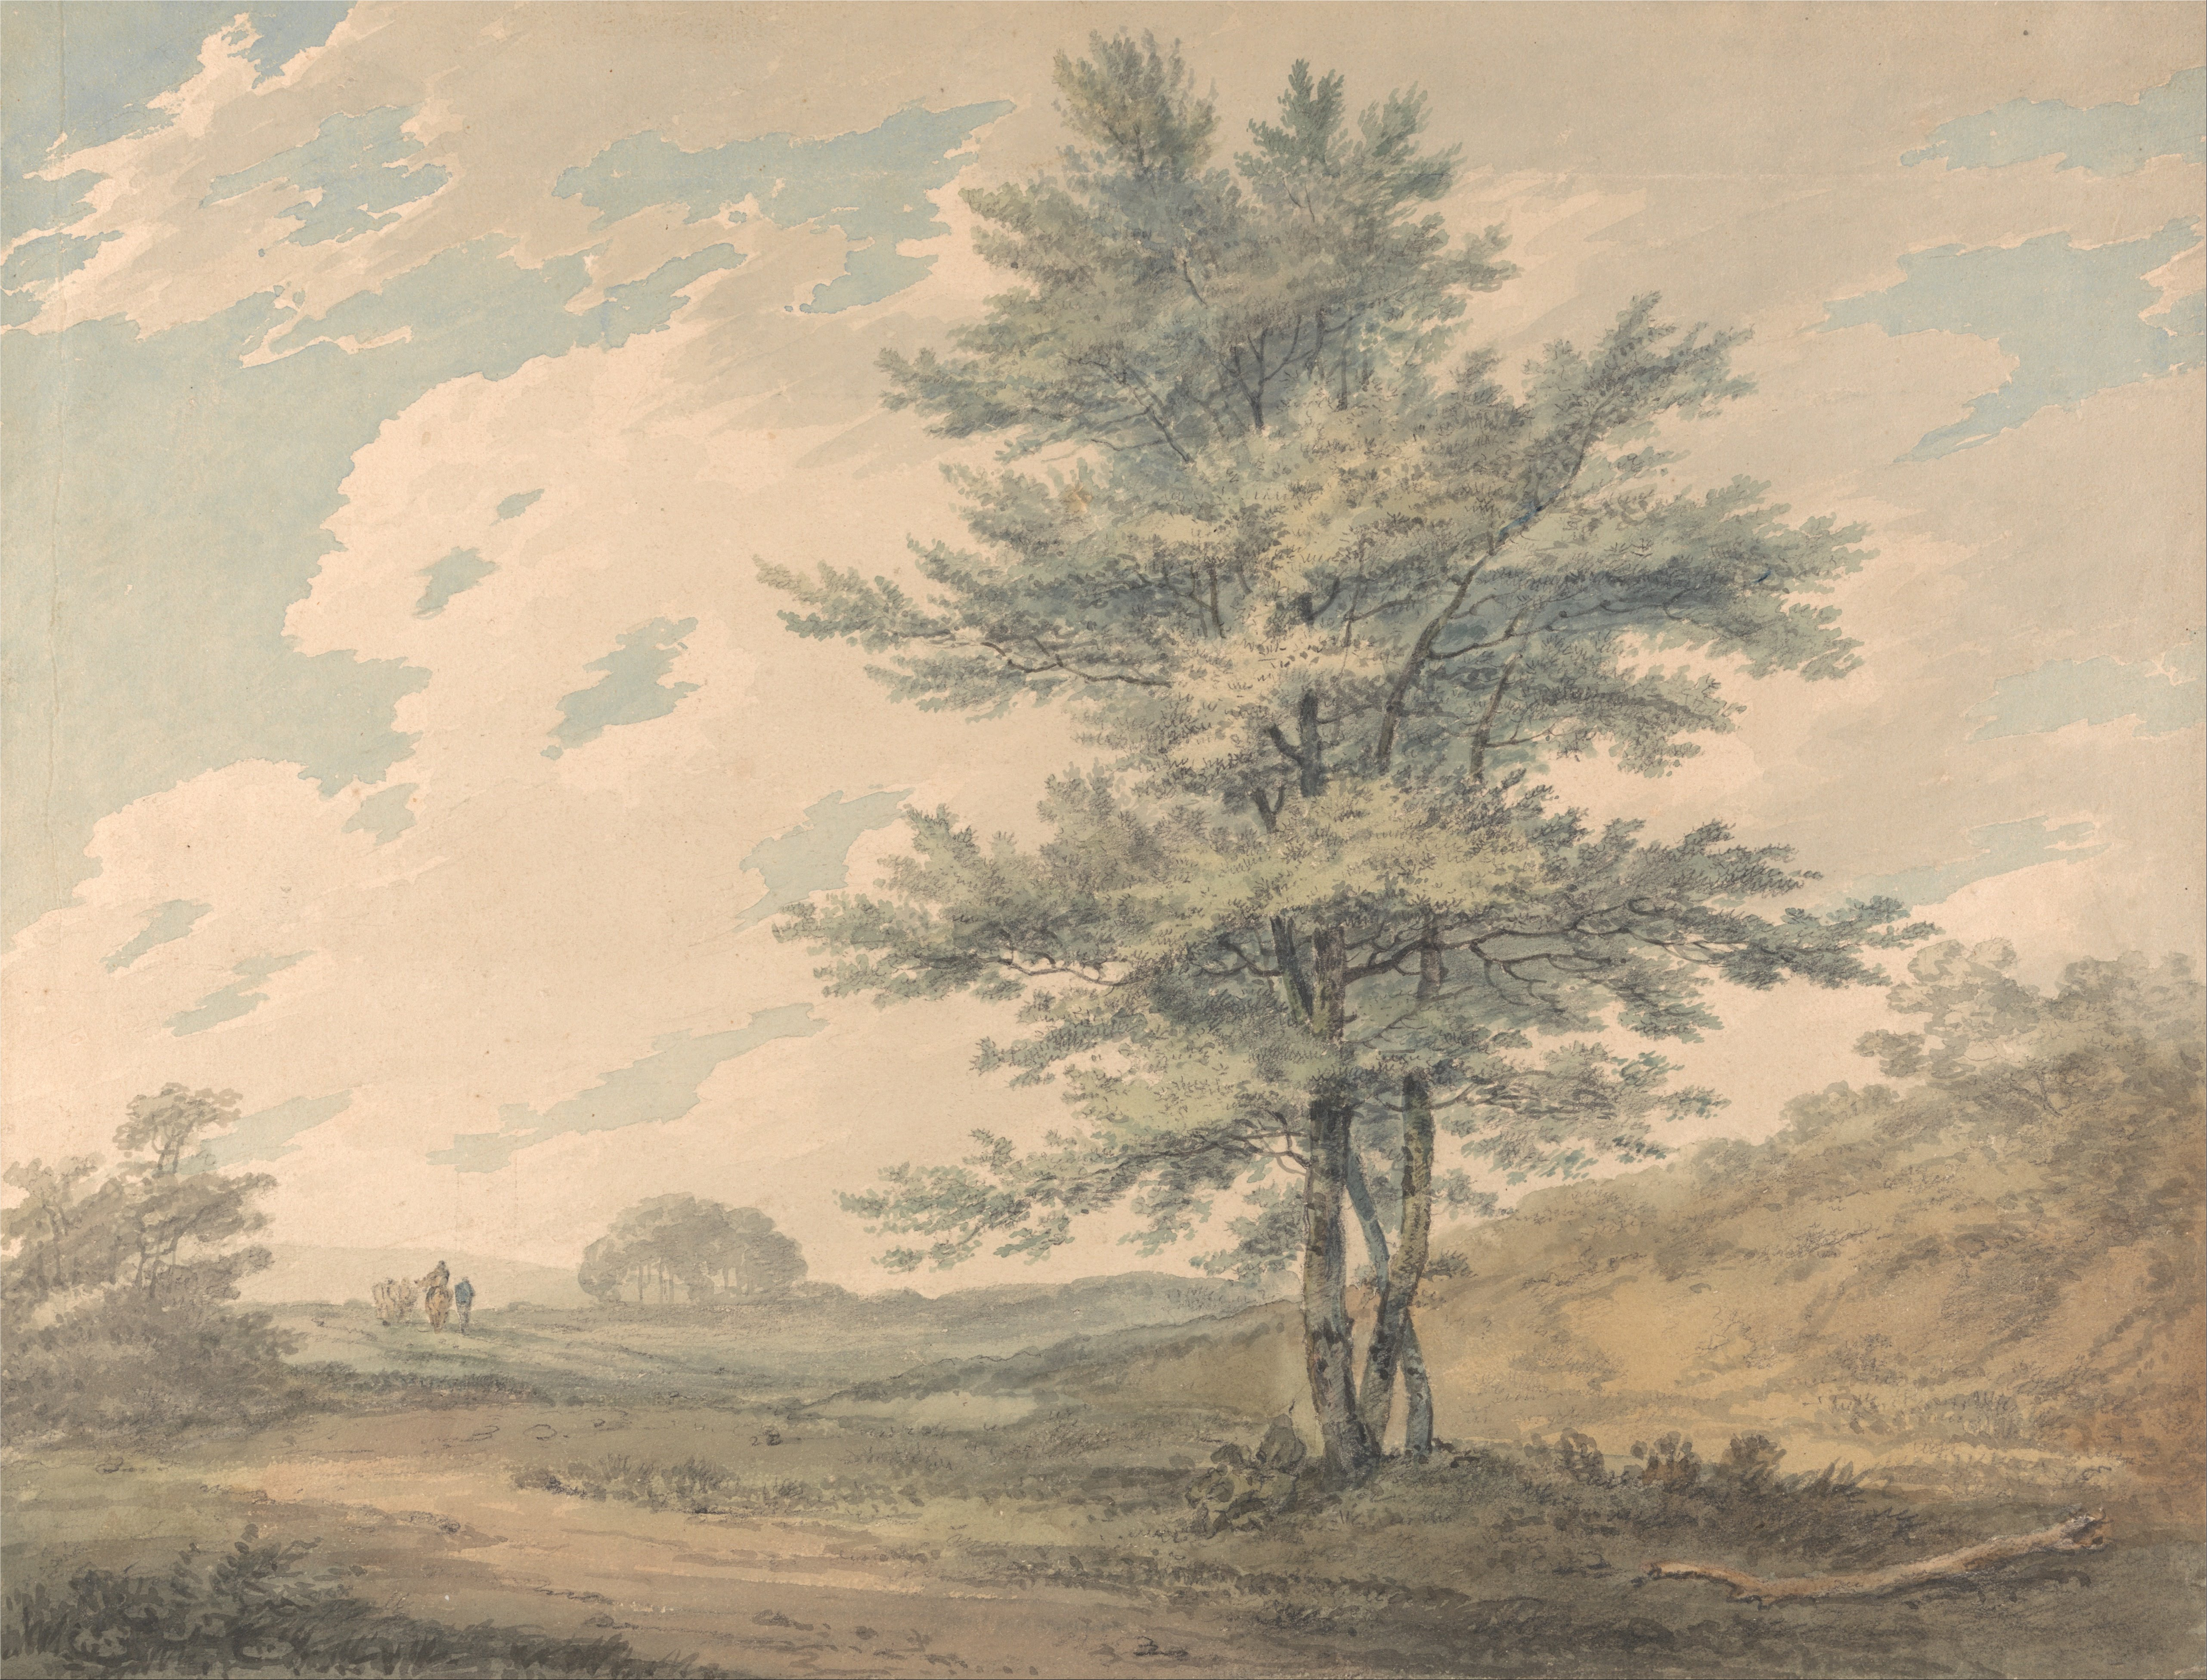 File:Joseph Mallord William Turner   Landscape With Trees And Figures    Google Art Project